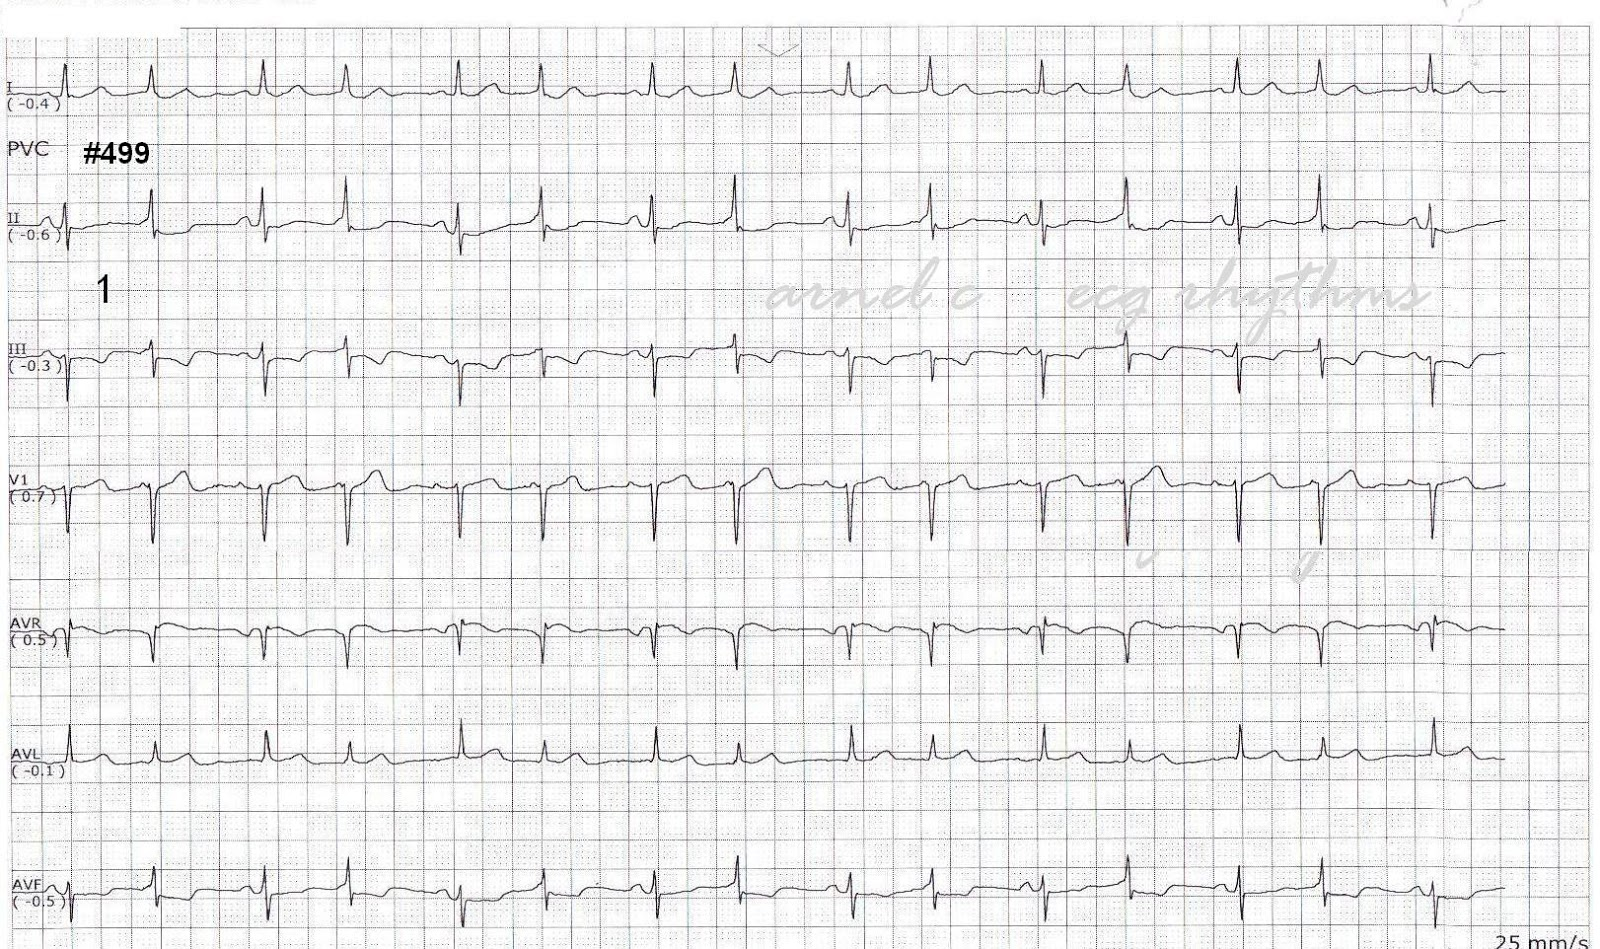 ECG Rhythms: Intermittent preexcitation, QRS alternans or